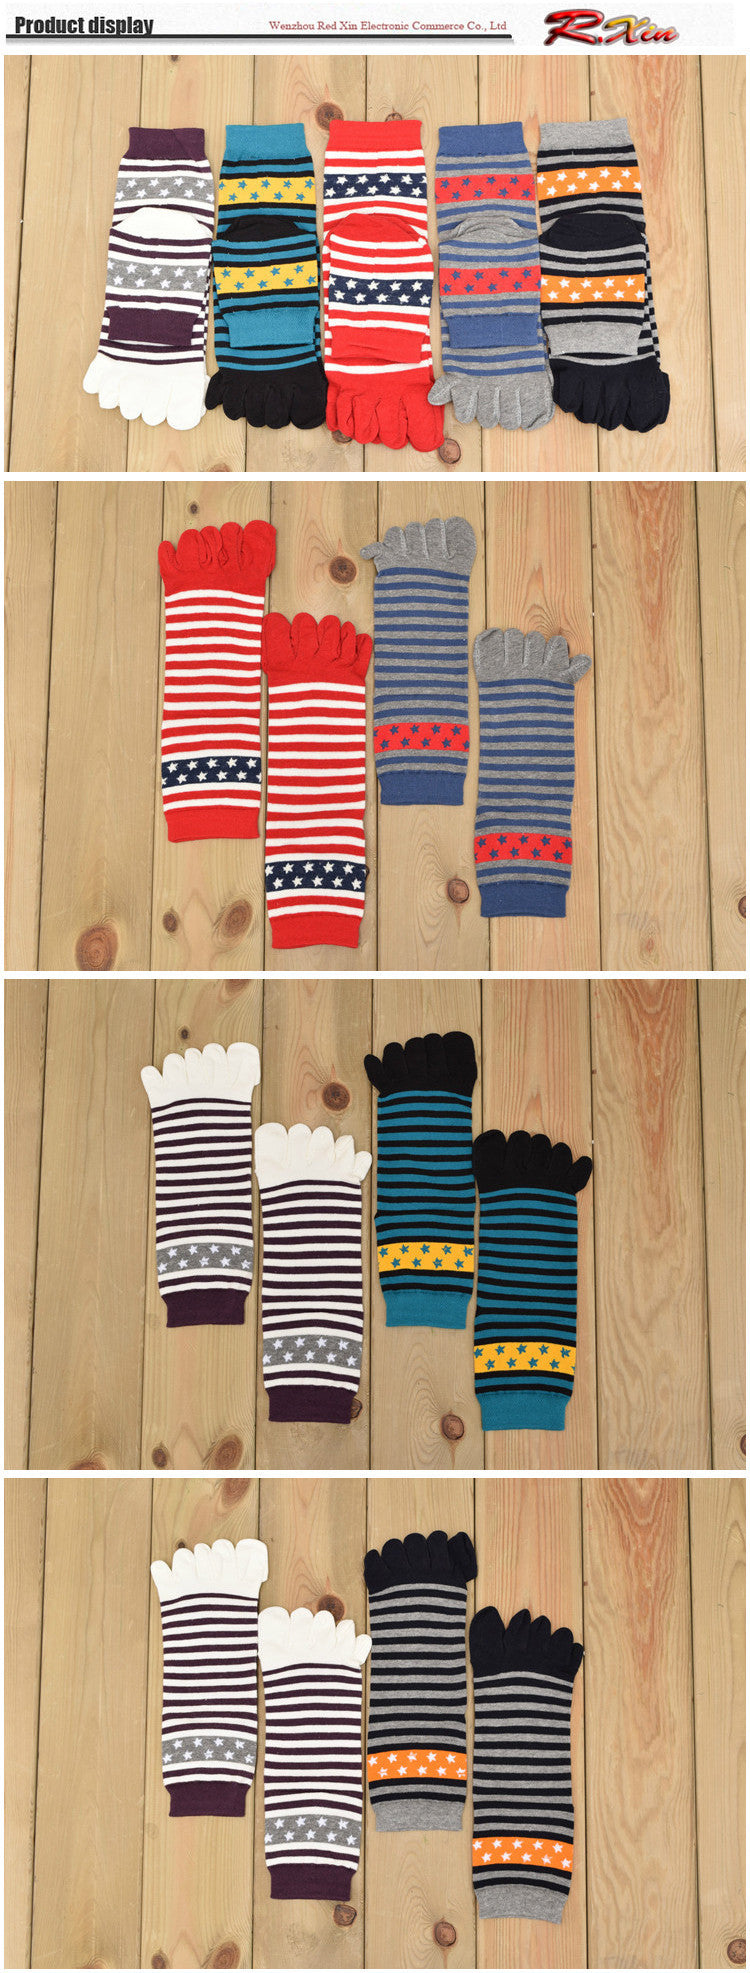 Wiggle Socks New Unisex Socks Cotton Meias Sports Five Finger Socks Toe Socks For EU 40-46 Calcetines Ankle Socls - Cerkos  - 6